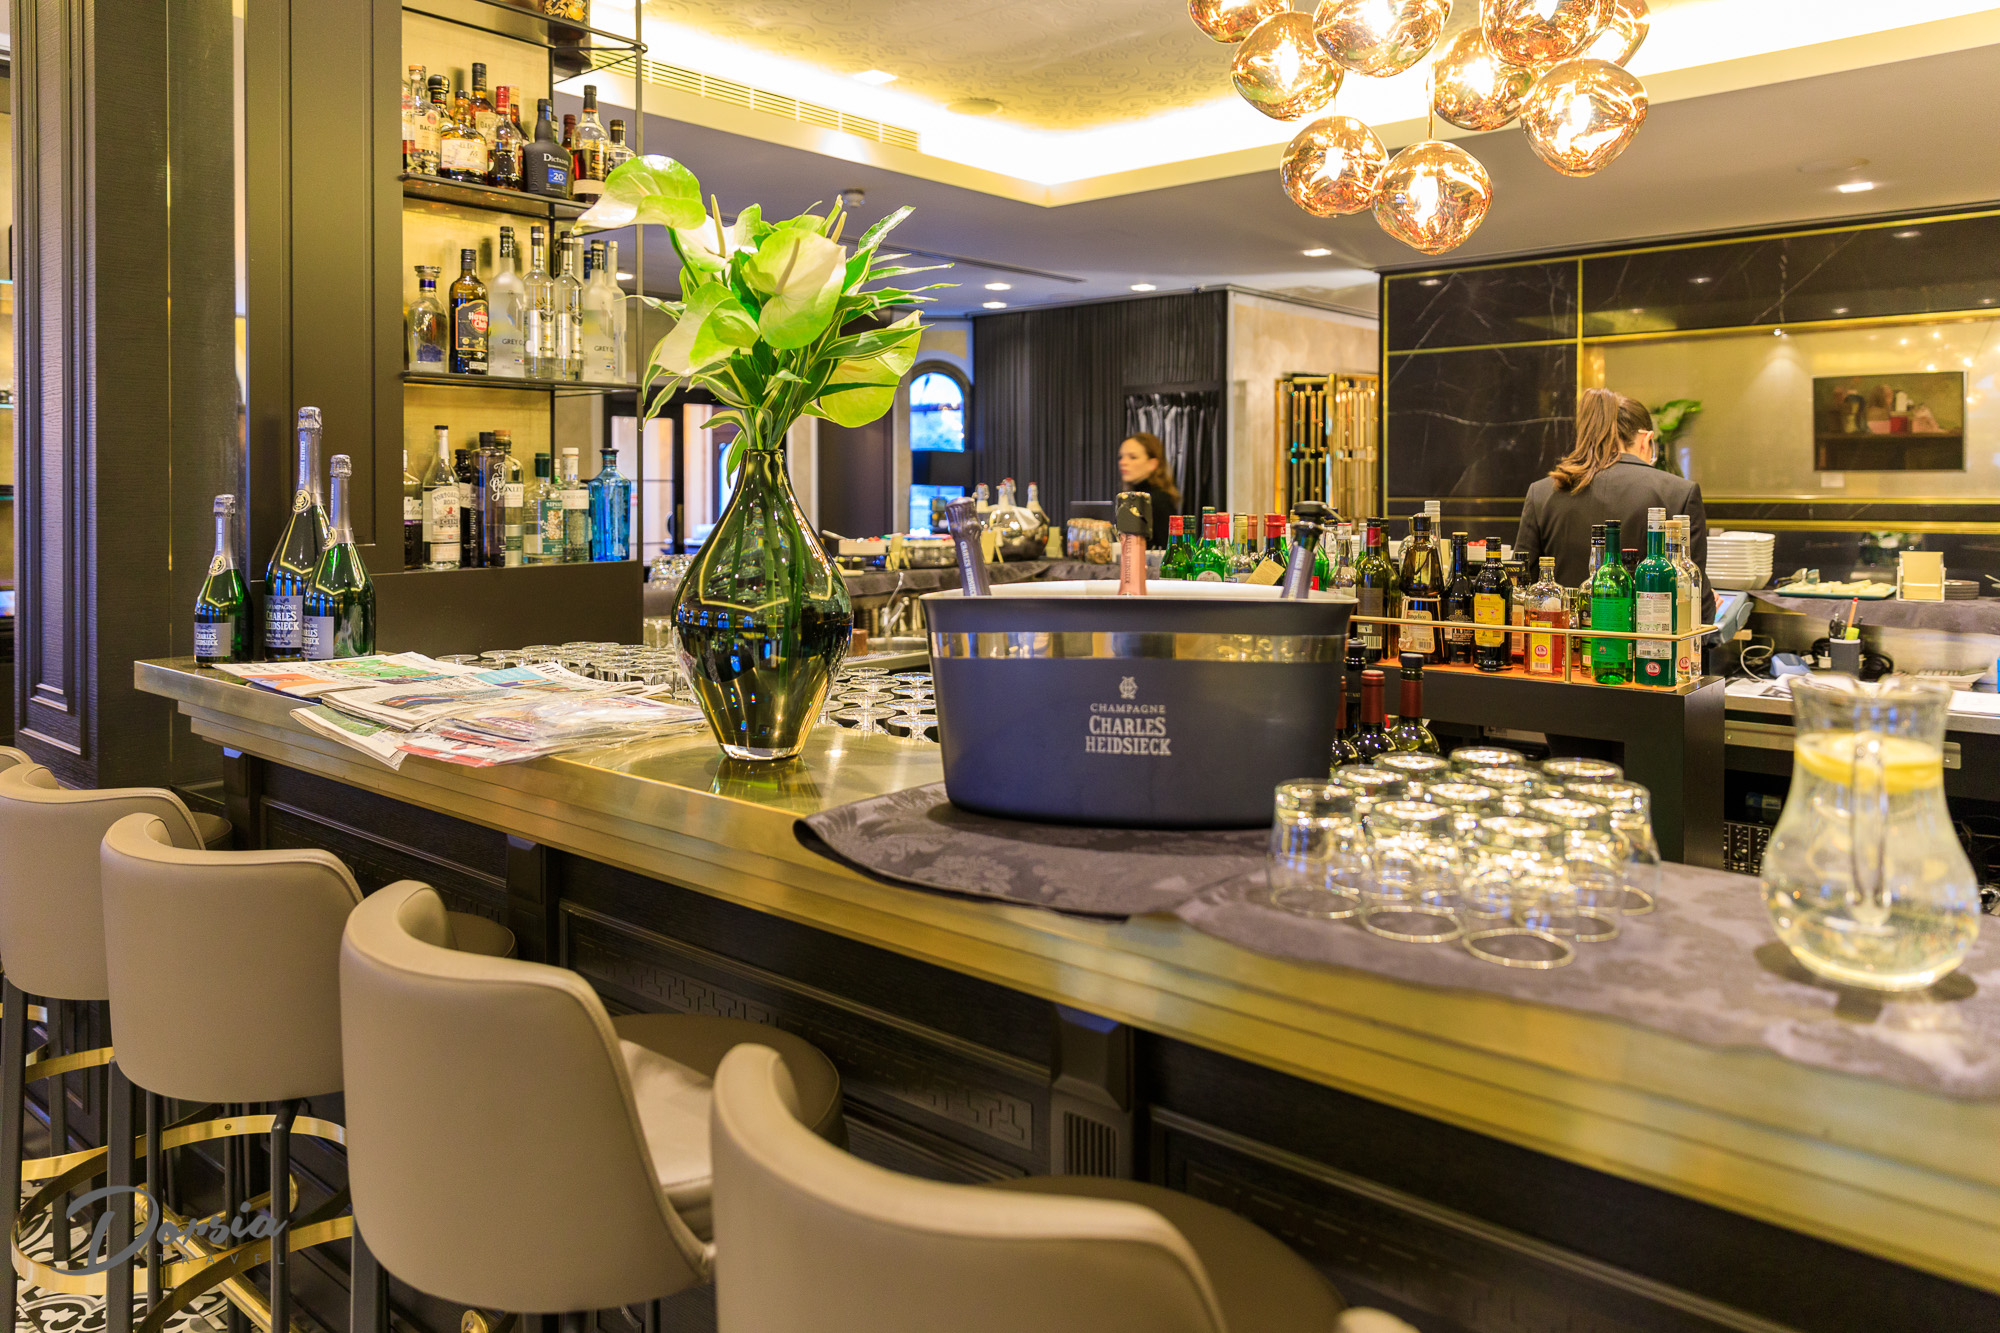 Short review: Baglioni, London